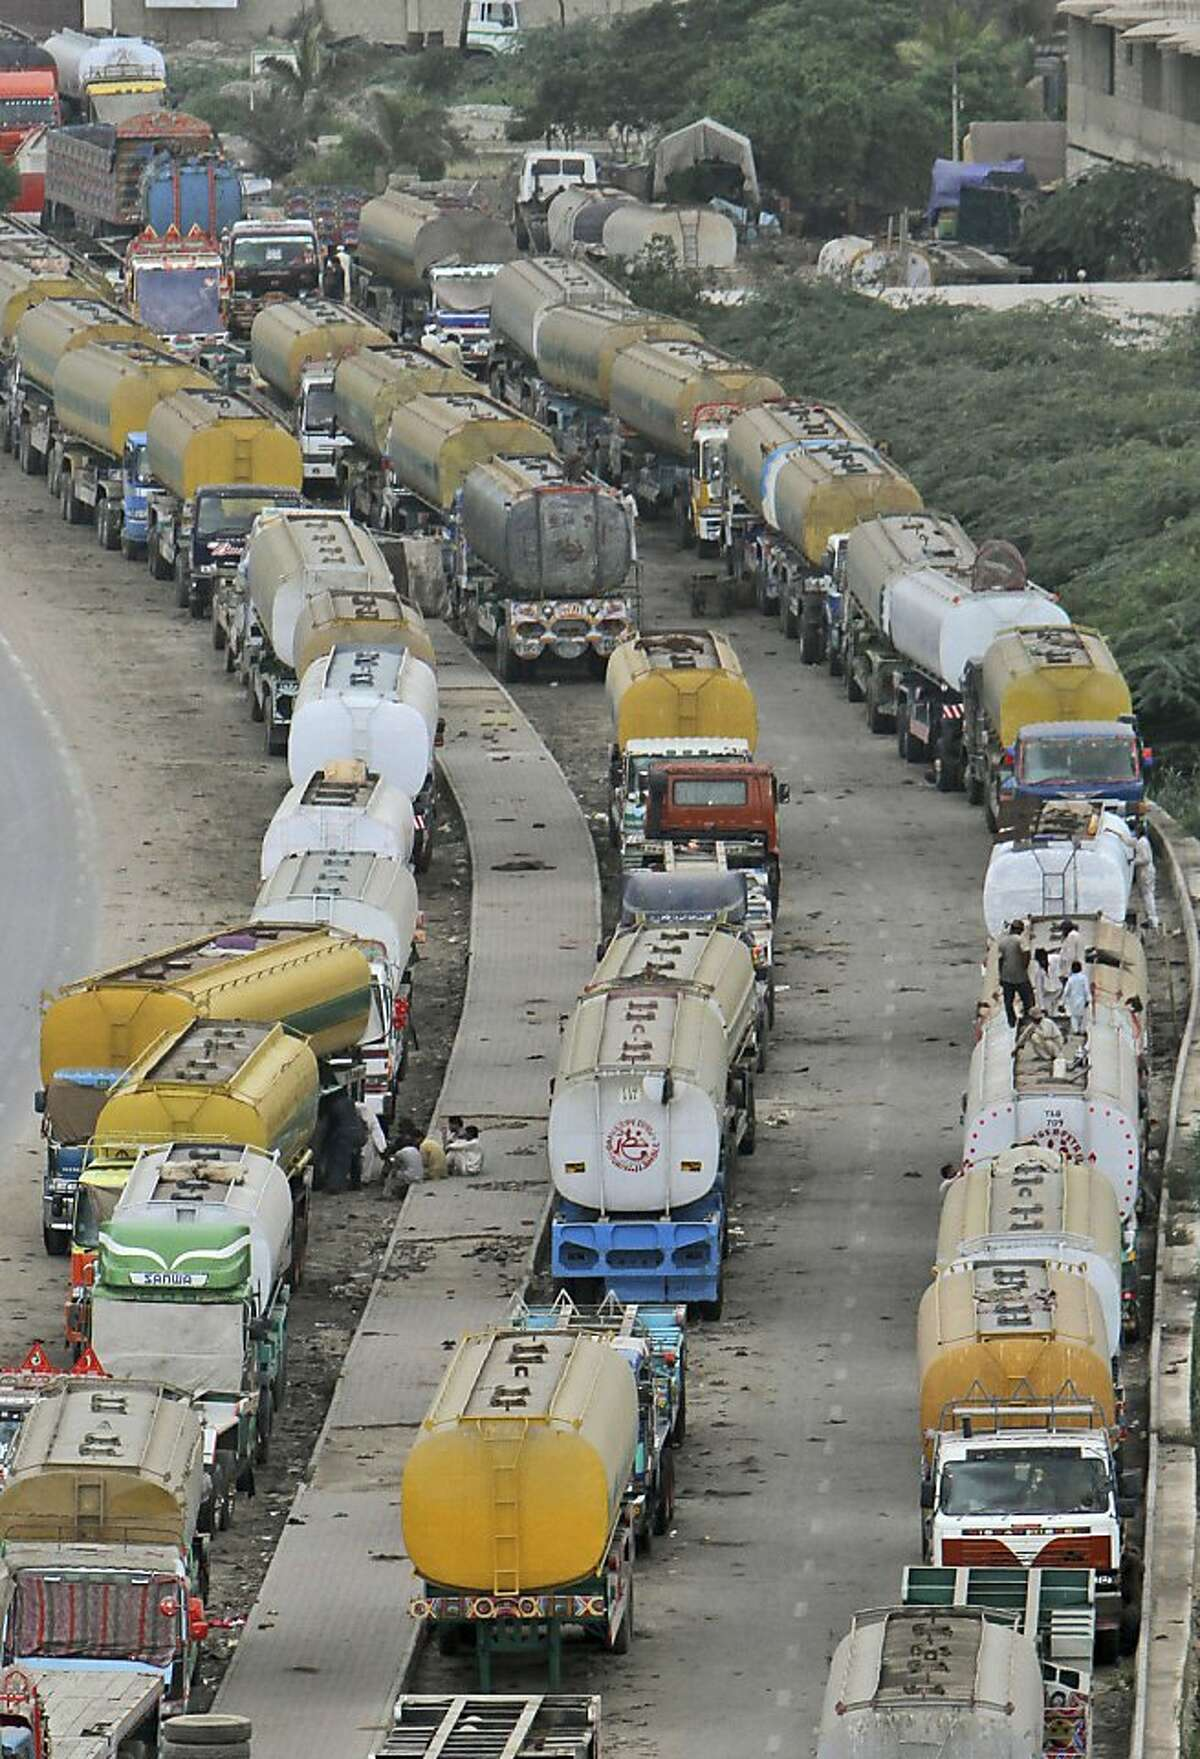 Oil tankers, which were used to transport NATO fuel supplies to Afghanistan, are parked Karachi, Pakistan, Wednesday, July 4, 2012. Trucks carrying NATO troop supplies are set to resume shipments to Afghanistan on Wednesday following a deal between the U.S. and Pakistan that ended Islamabad's seven-month blockade. (AP Photo/Fareed Khan)